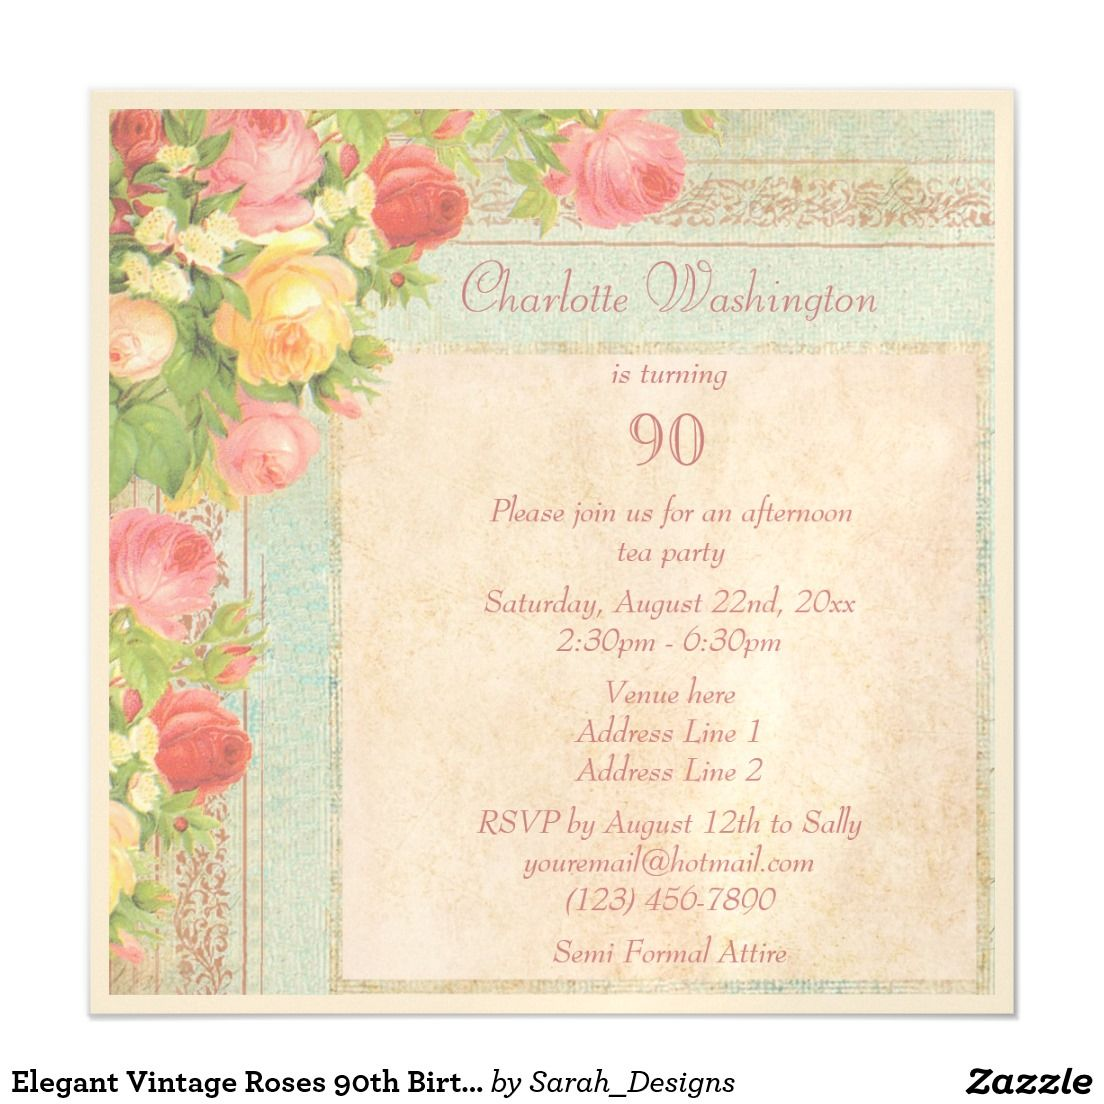 Elegant Vintage Roses 90th Birthday Party Magnetic Card 90th